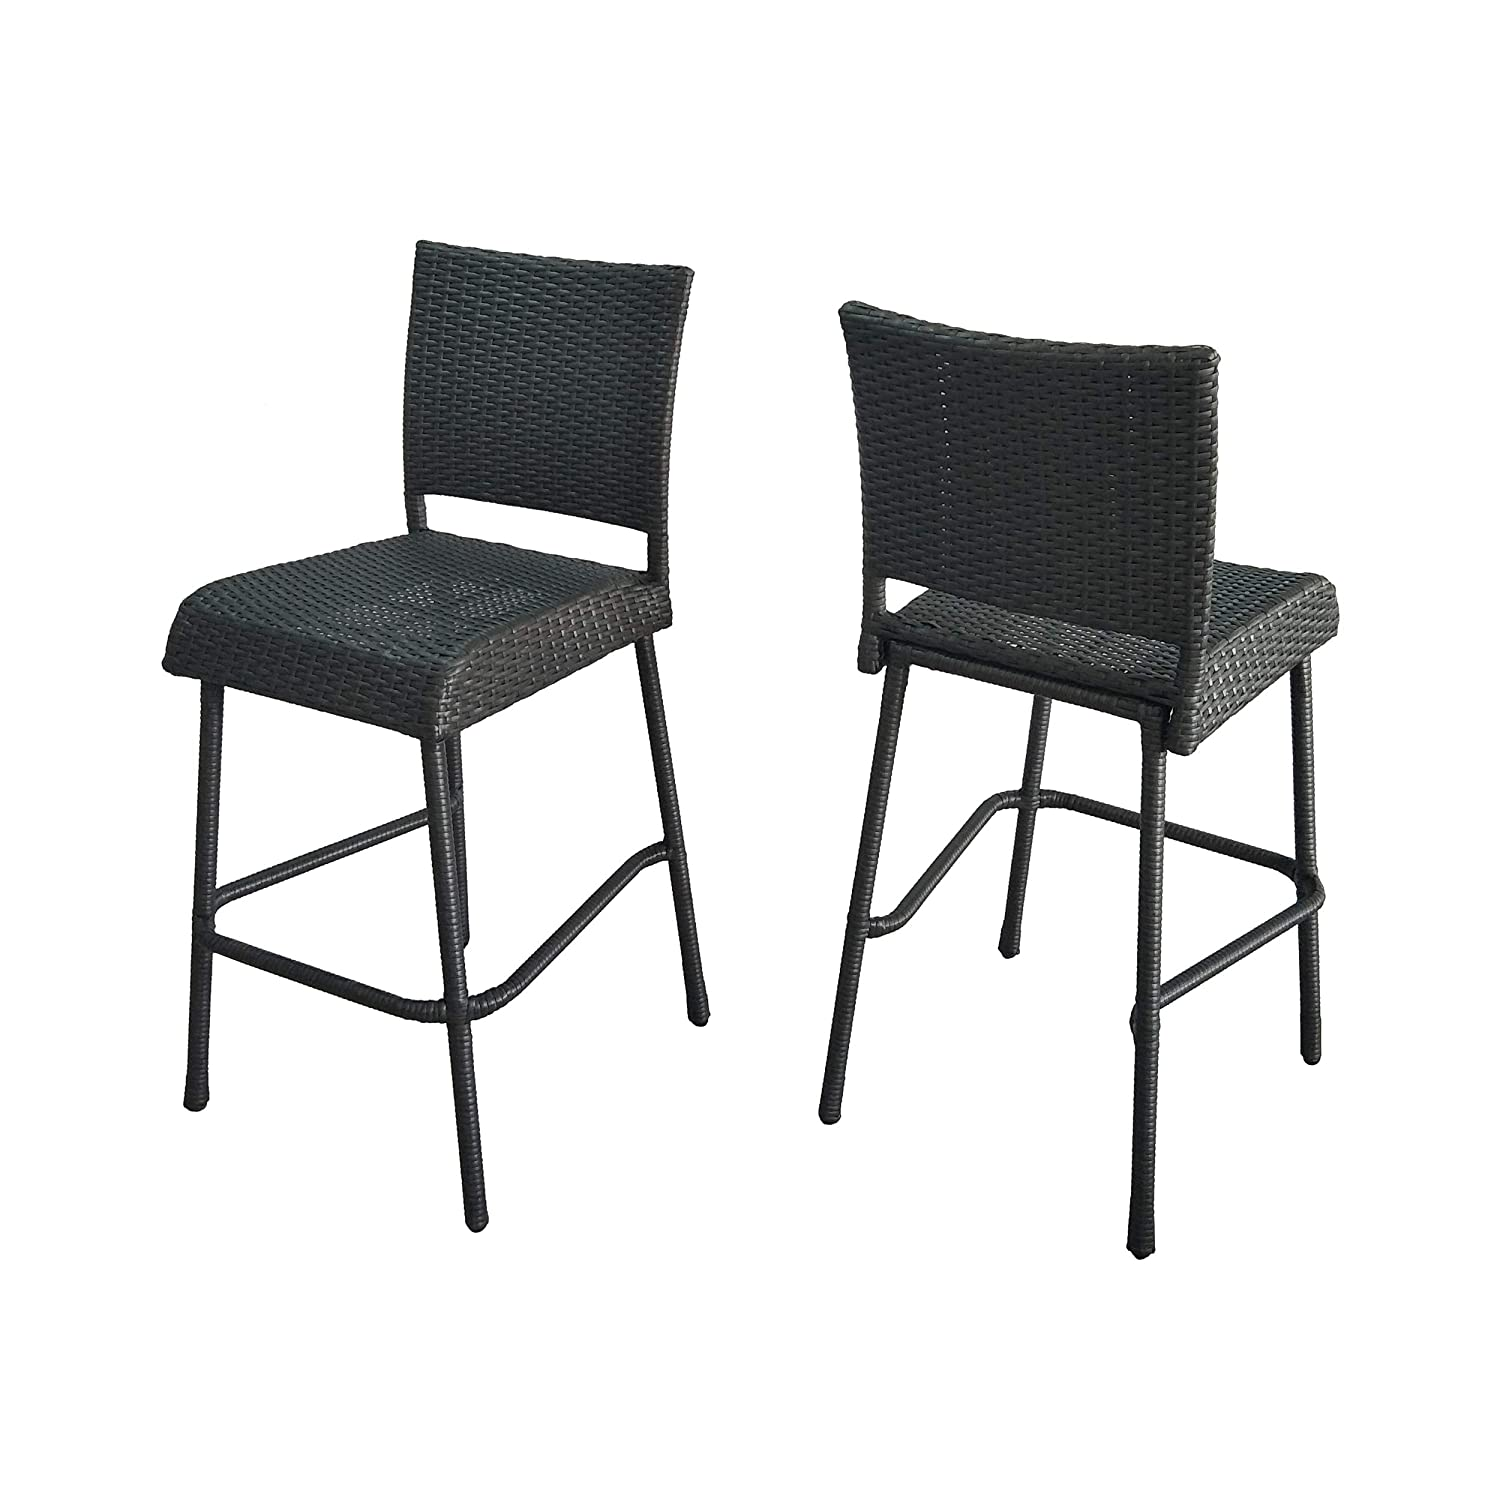 Image of Christopher Knight Home 305812 Jiro Outdoor Wicker Barstool, Gray Bar Sets